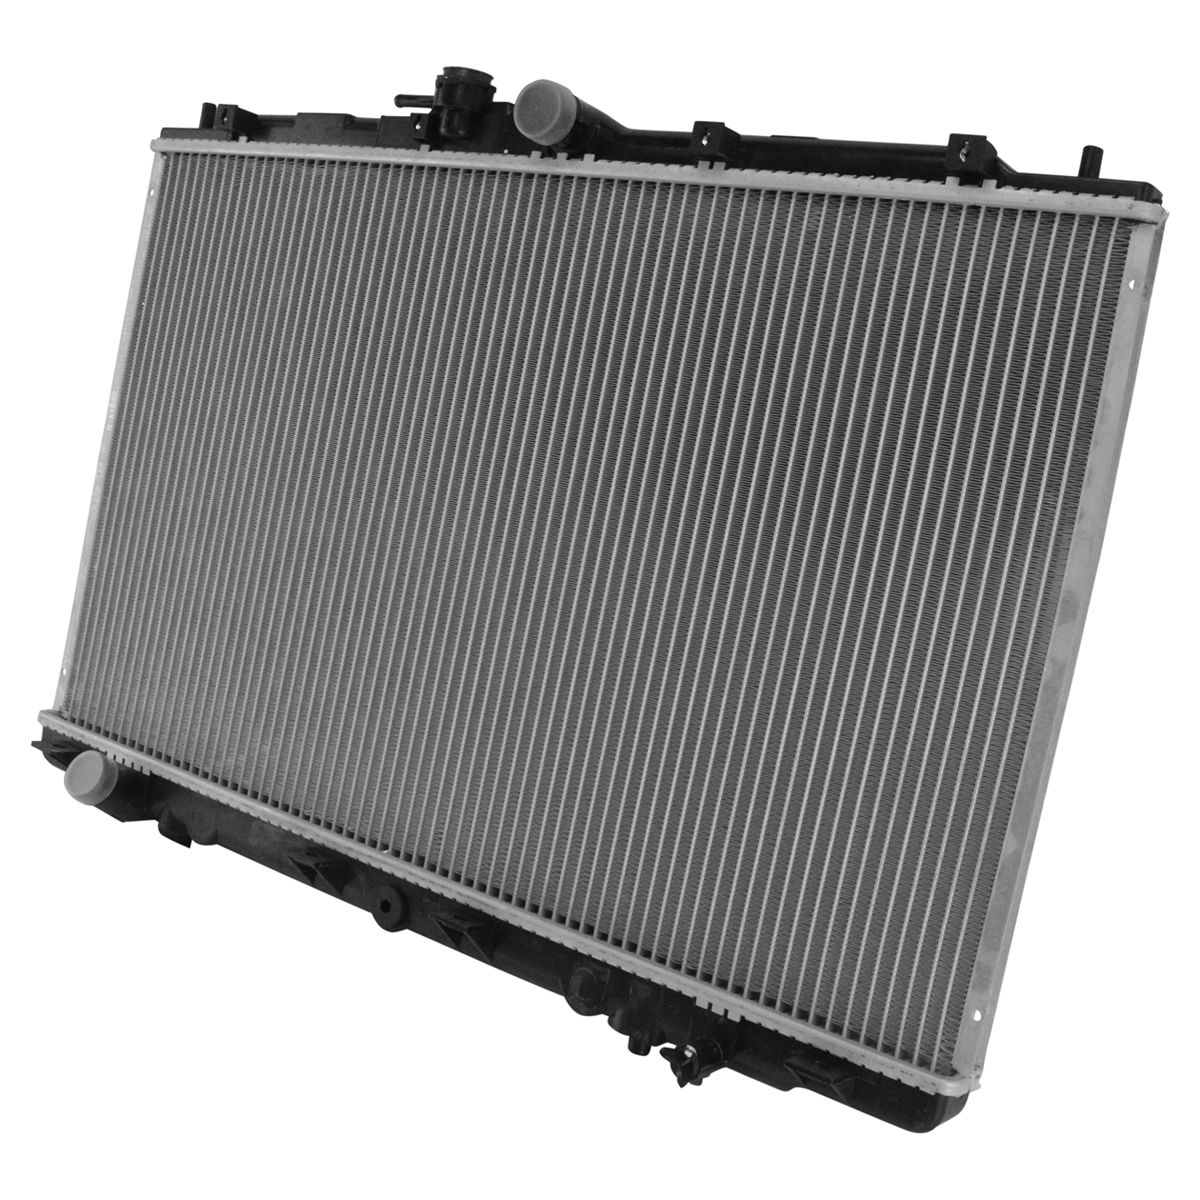 Radiator Assembly Plastic Tanks Aluminum Core Direct Fit